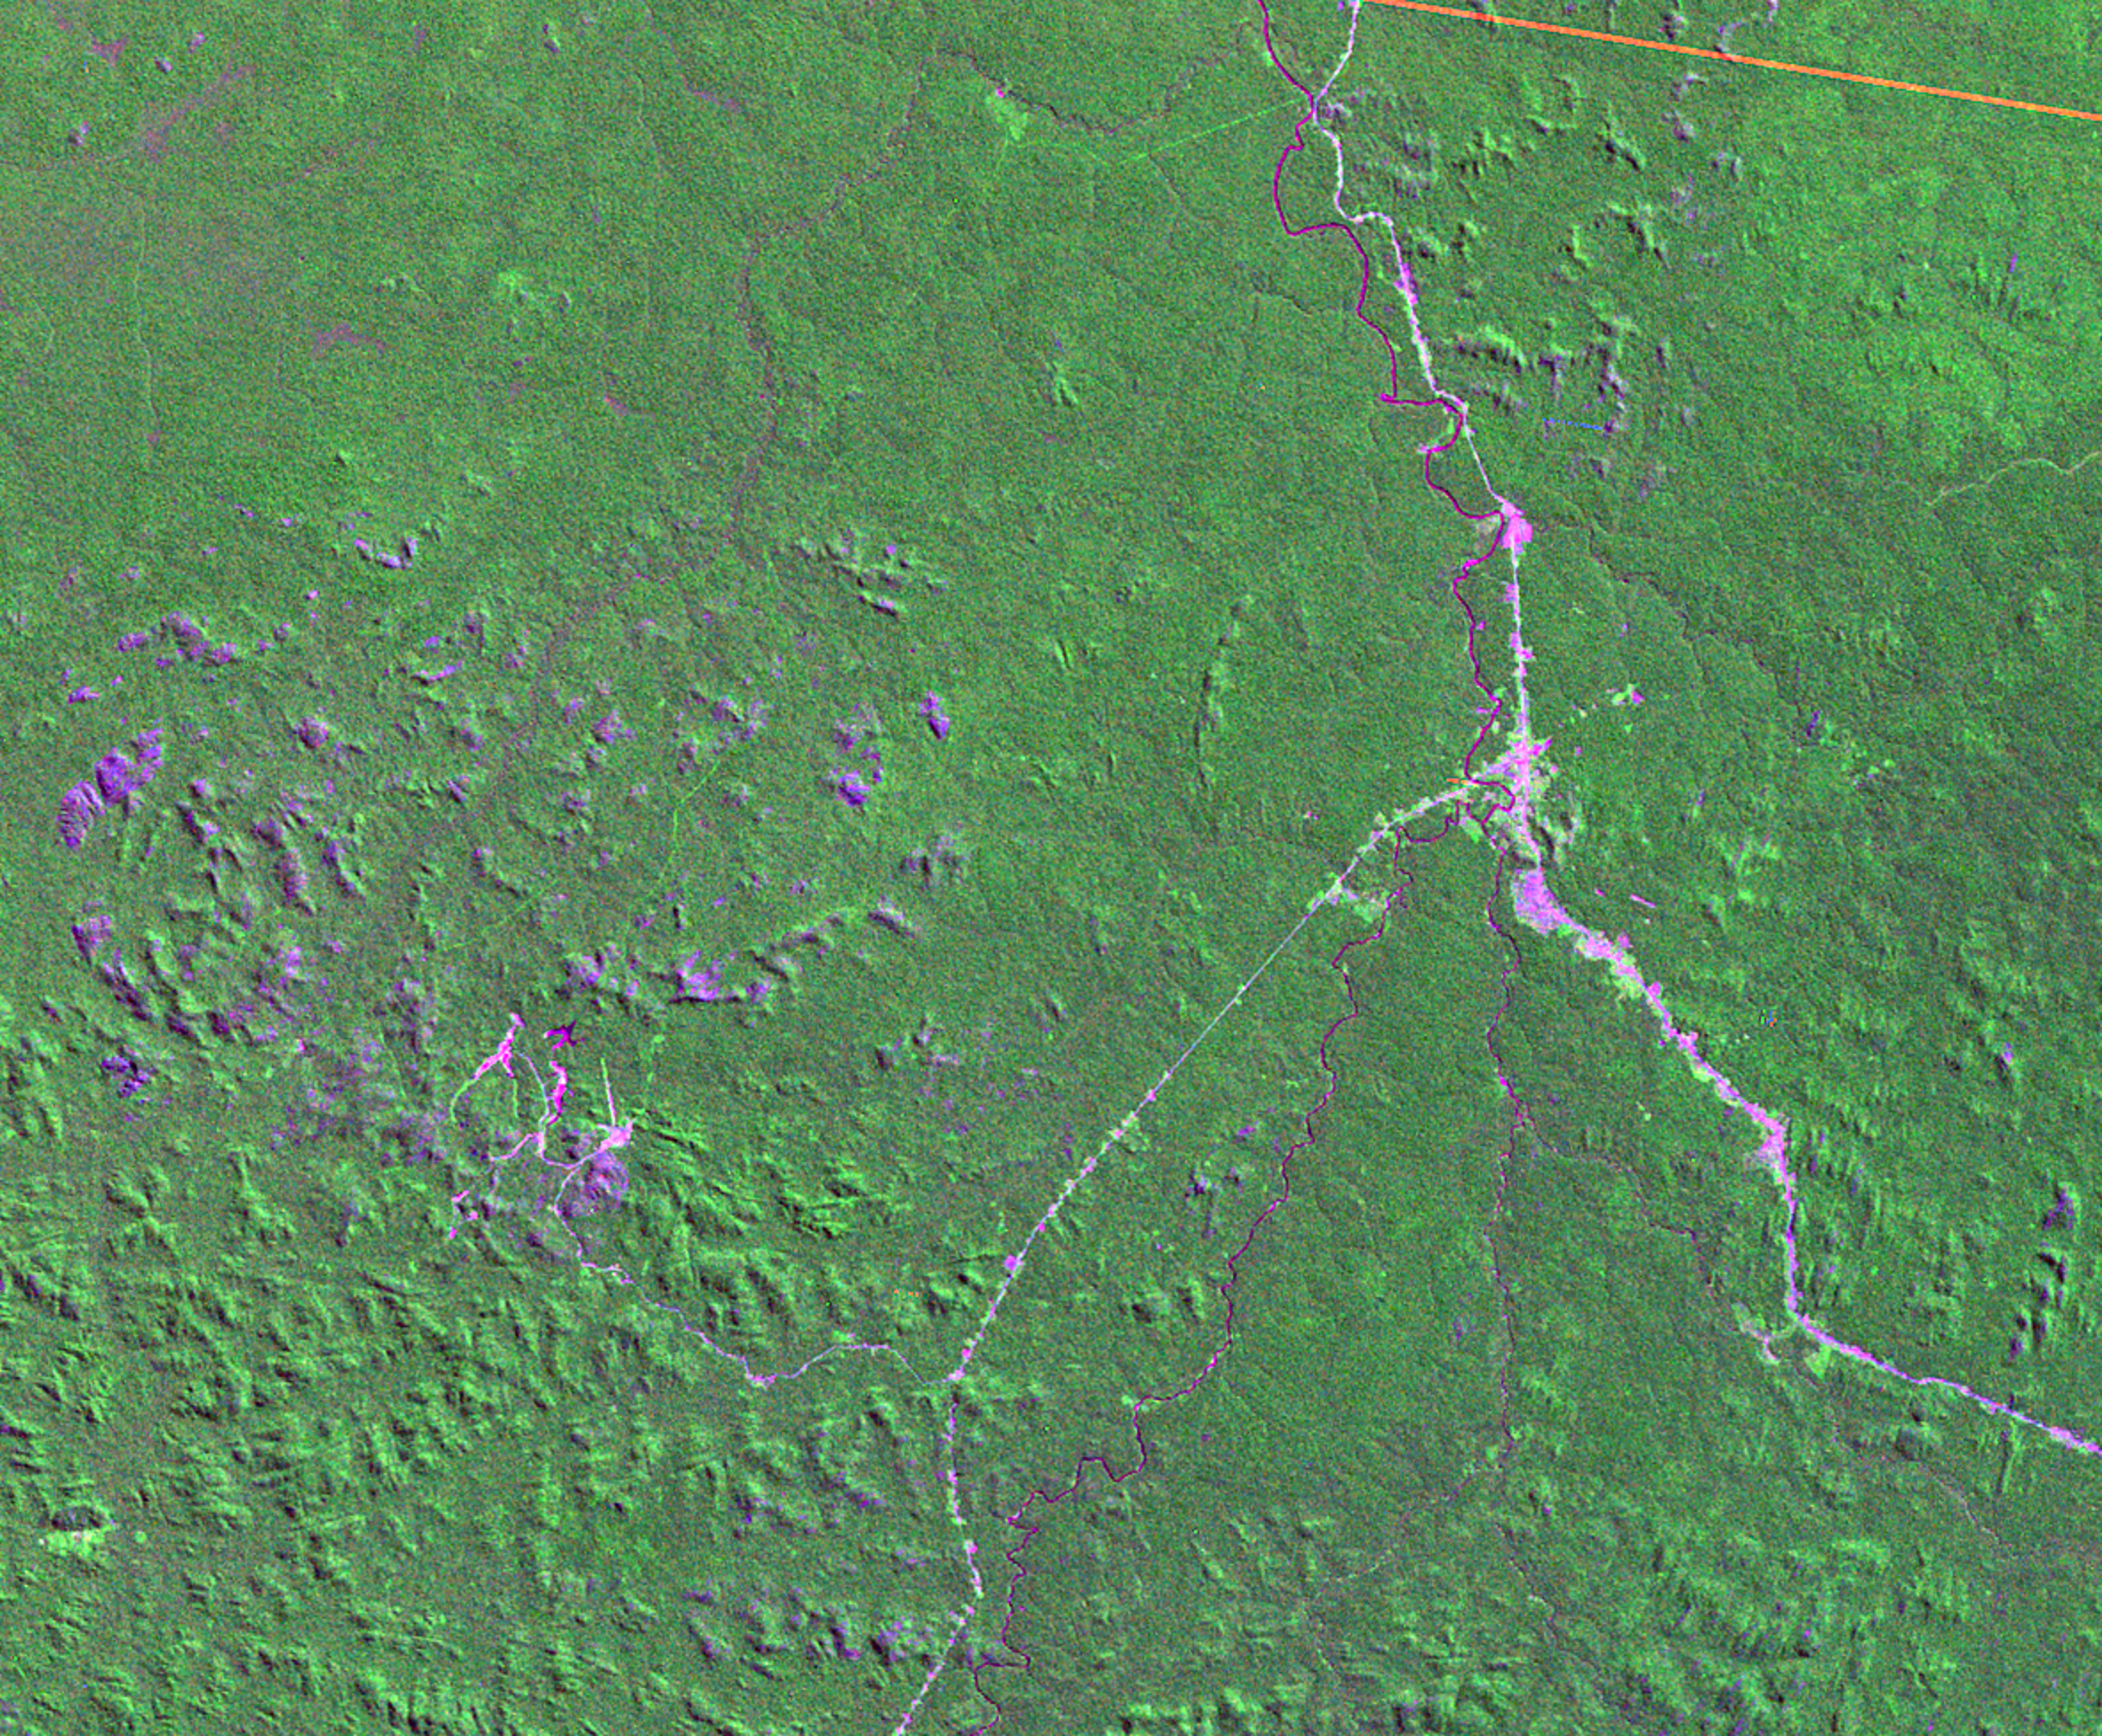 June 19, 1975, Landsat 2 (path/row 249/67) — Ariquemes, Brazil